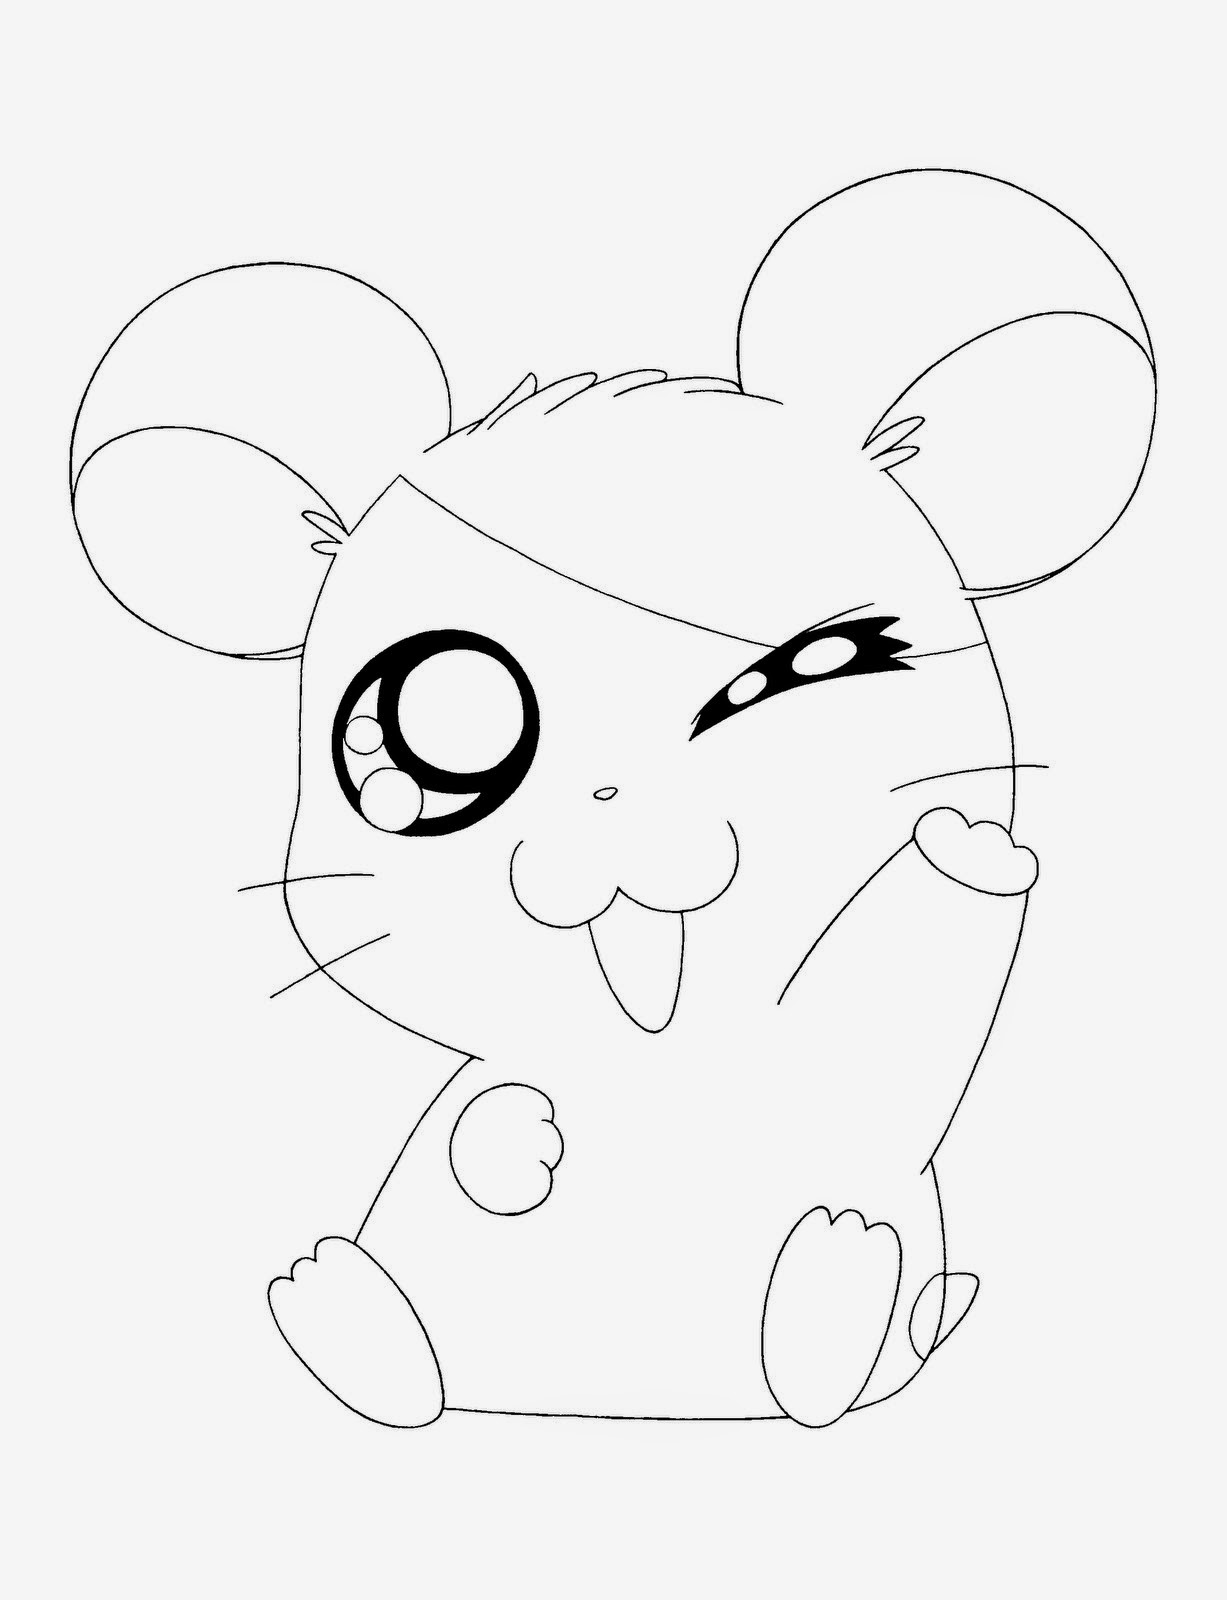 coloring pages of cute things coloring pages cool cute animal coloring pages 101 cute things of pages coloring